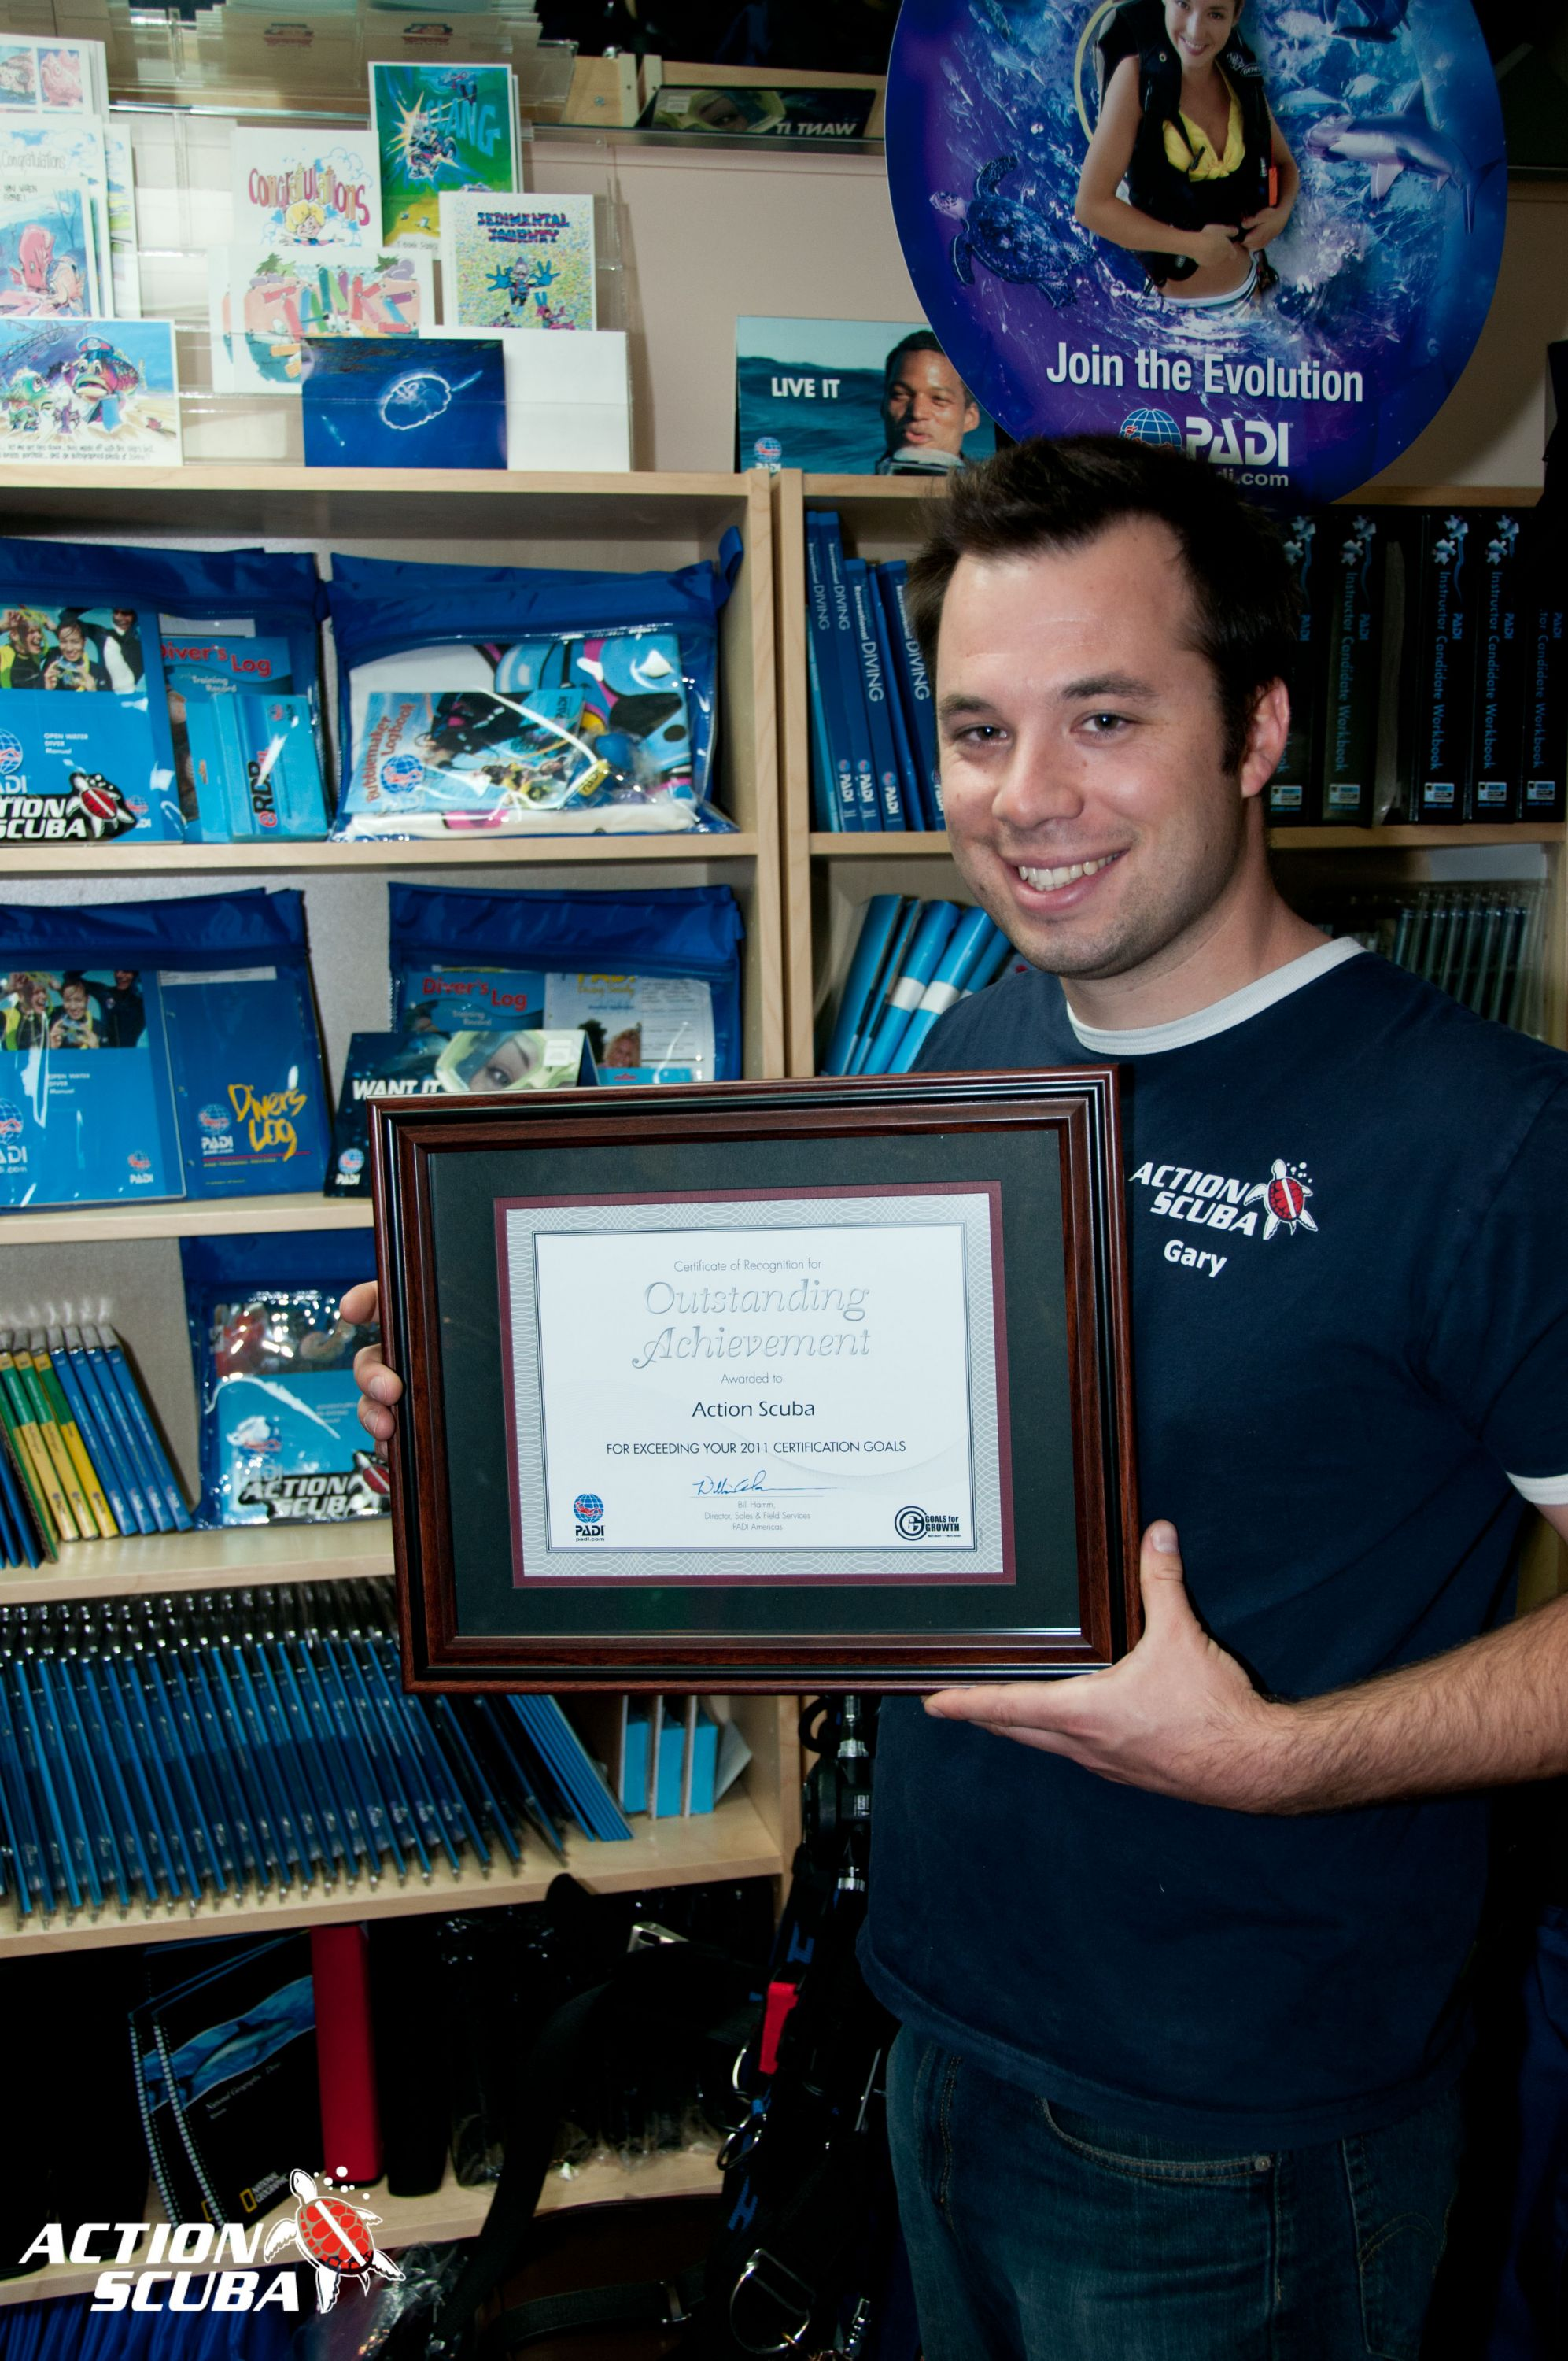 Action Scuba Montreal receives an award of outstanding achievement from PADI for scuba diving excellence